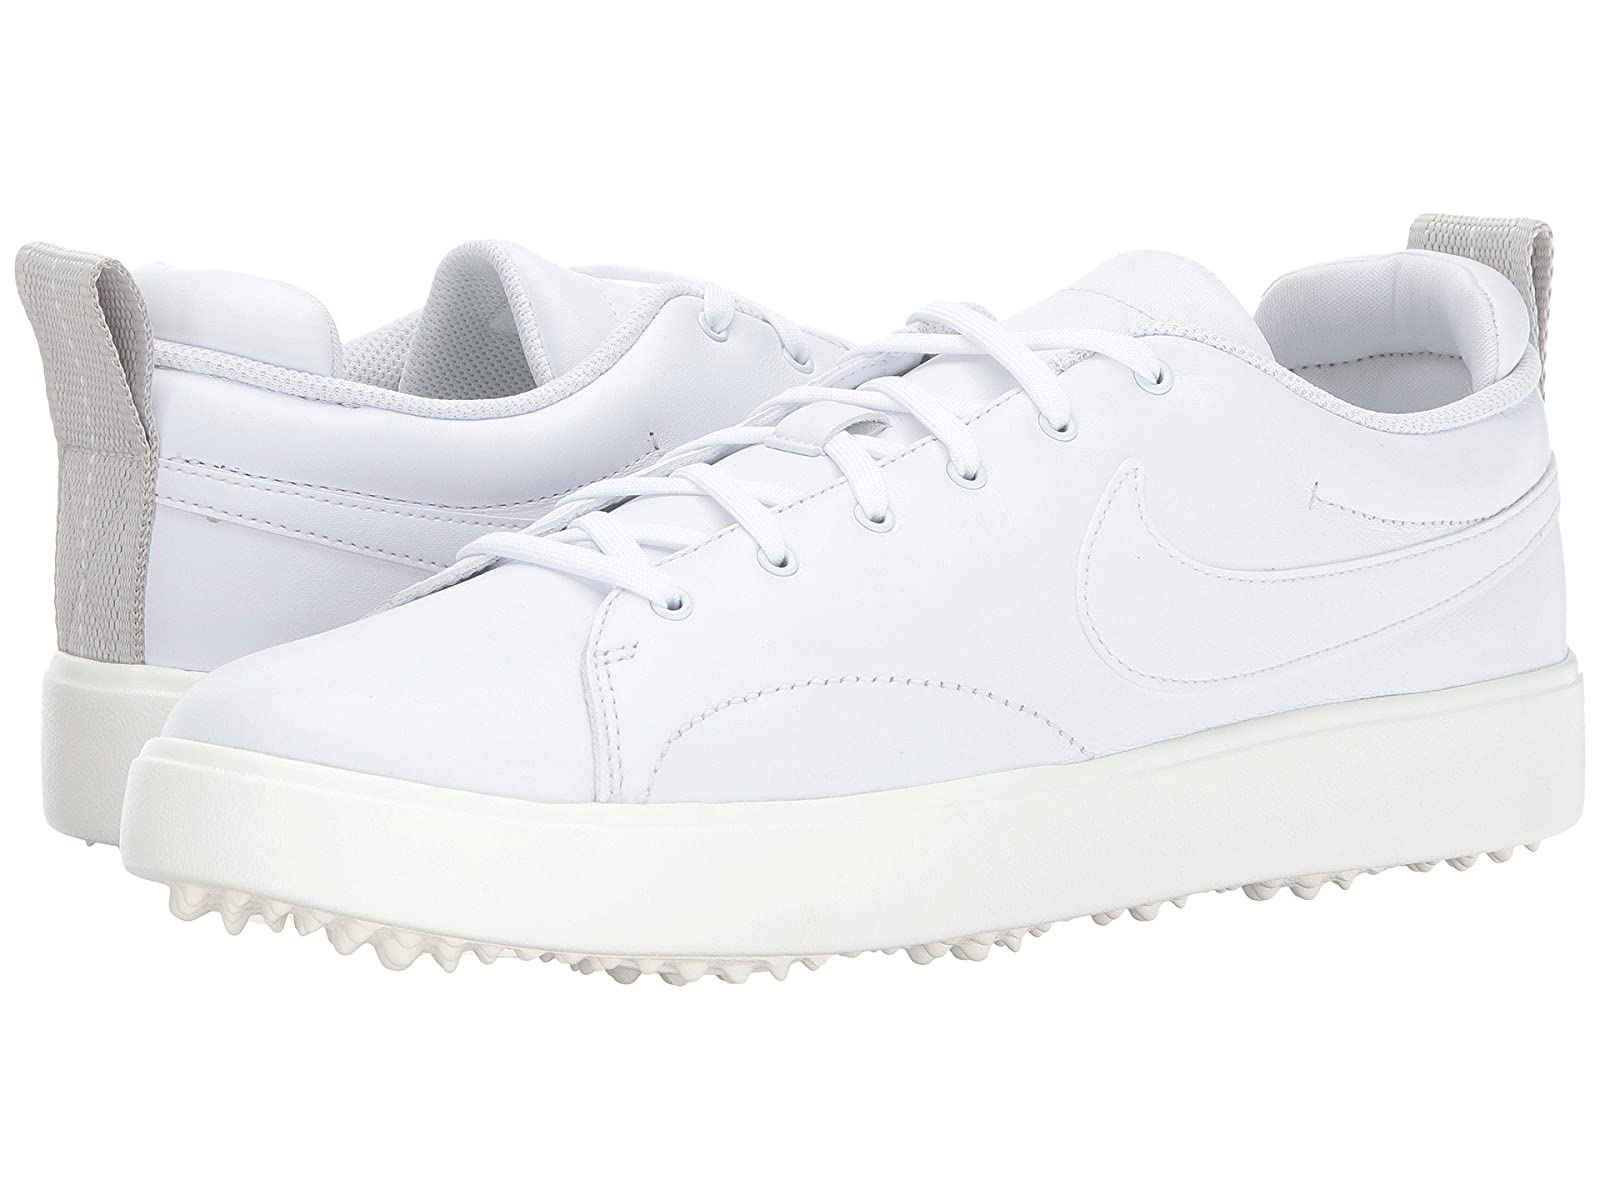 Nike Golf Course Course Course Classic :Gentleman/Lady:Shopkeeper bcf082